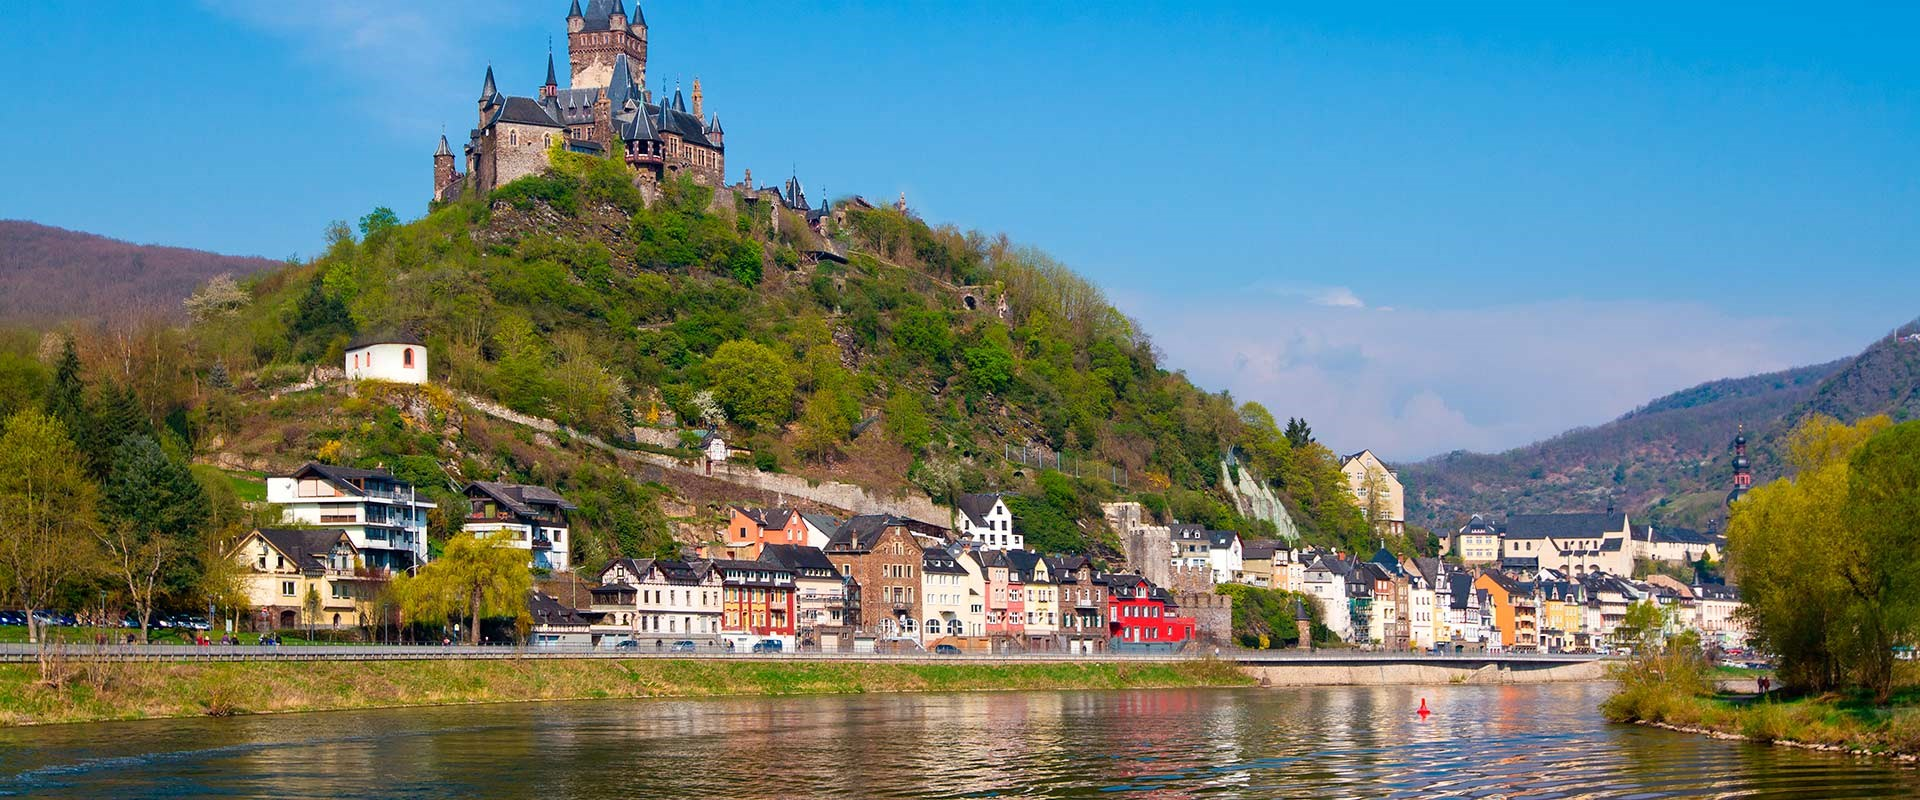 View the Roompot Ferienresort Cochem from the river cruise germany